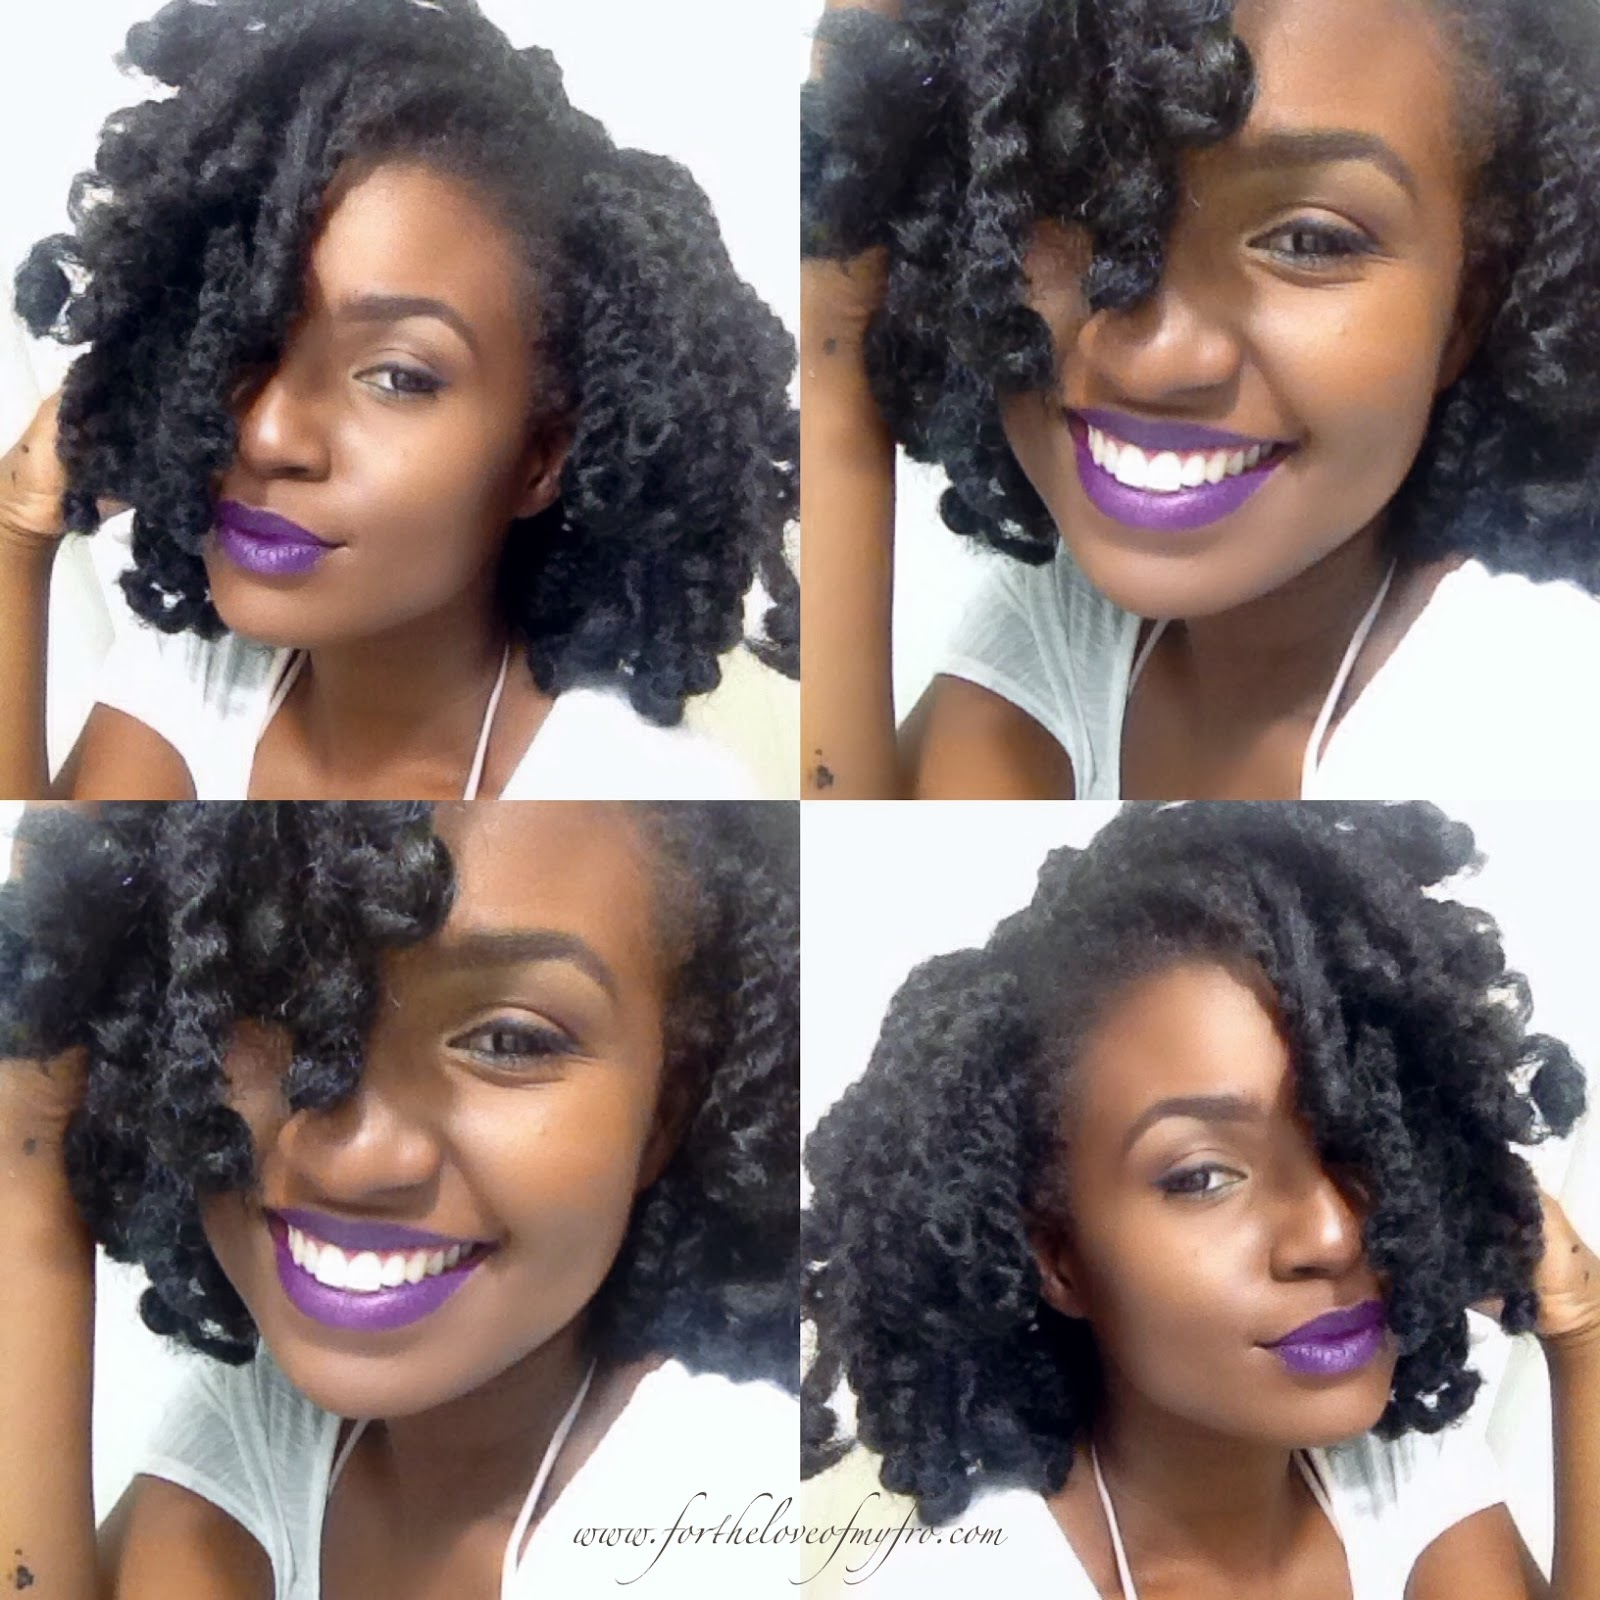 Crochet Braids Marley Hair Short Styles : natural protective hairstyles hairstyles for natural hair hair ...